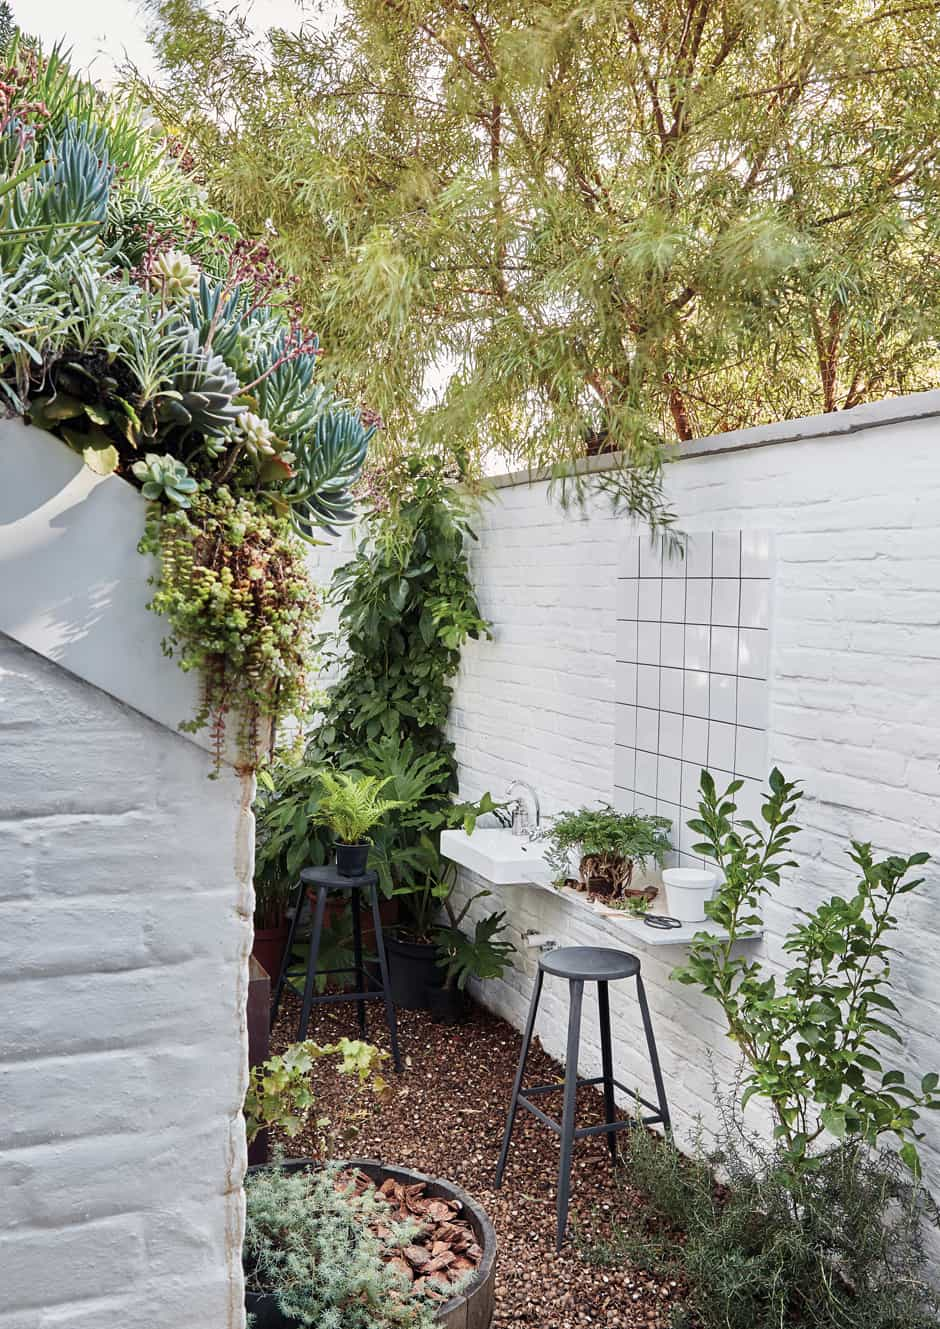 KITCHEN GARDEN Herbs thrive in this area, where a wall-mounted planter helps to maximise space. This courtyard also features a pizza oven and a roof garden overflowing with succulents.